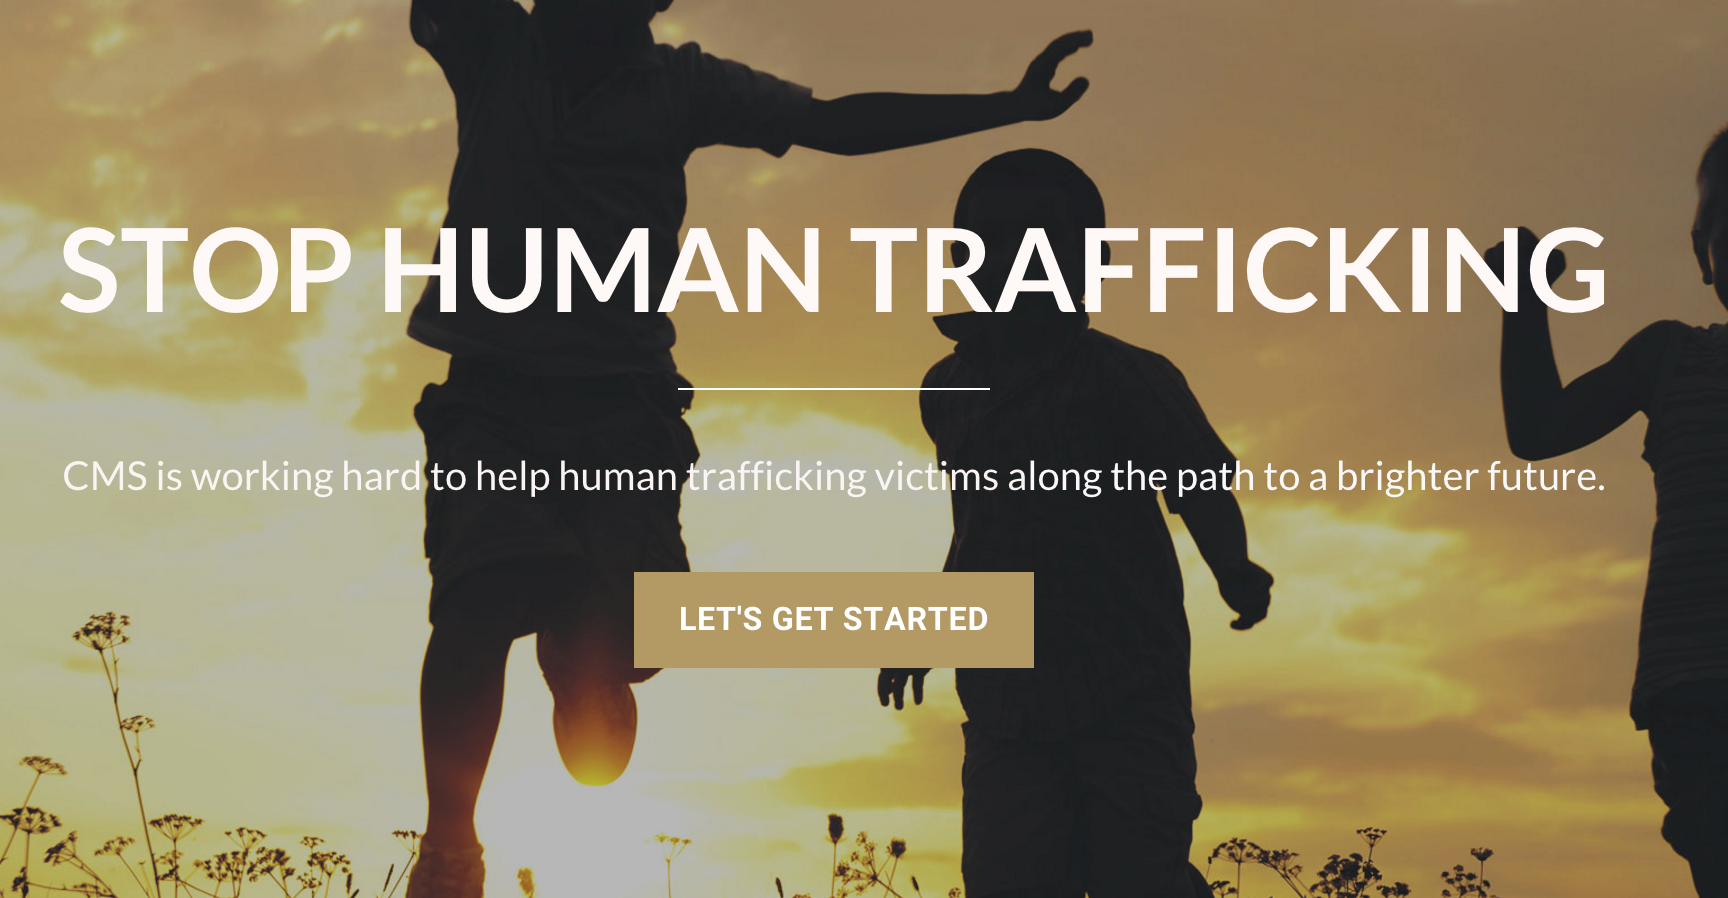 http://cmsstophumantrafficking.weebly.com/